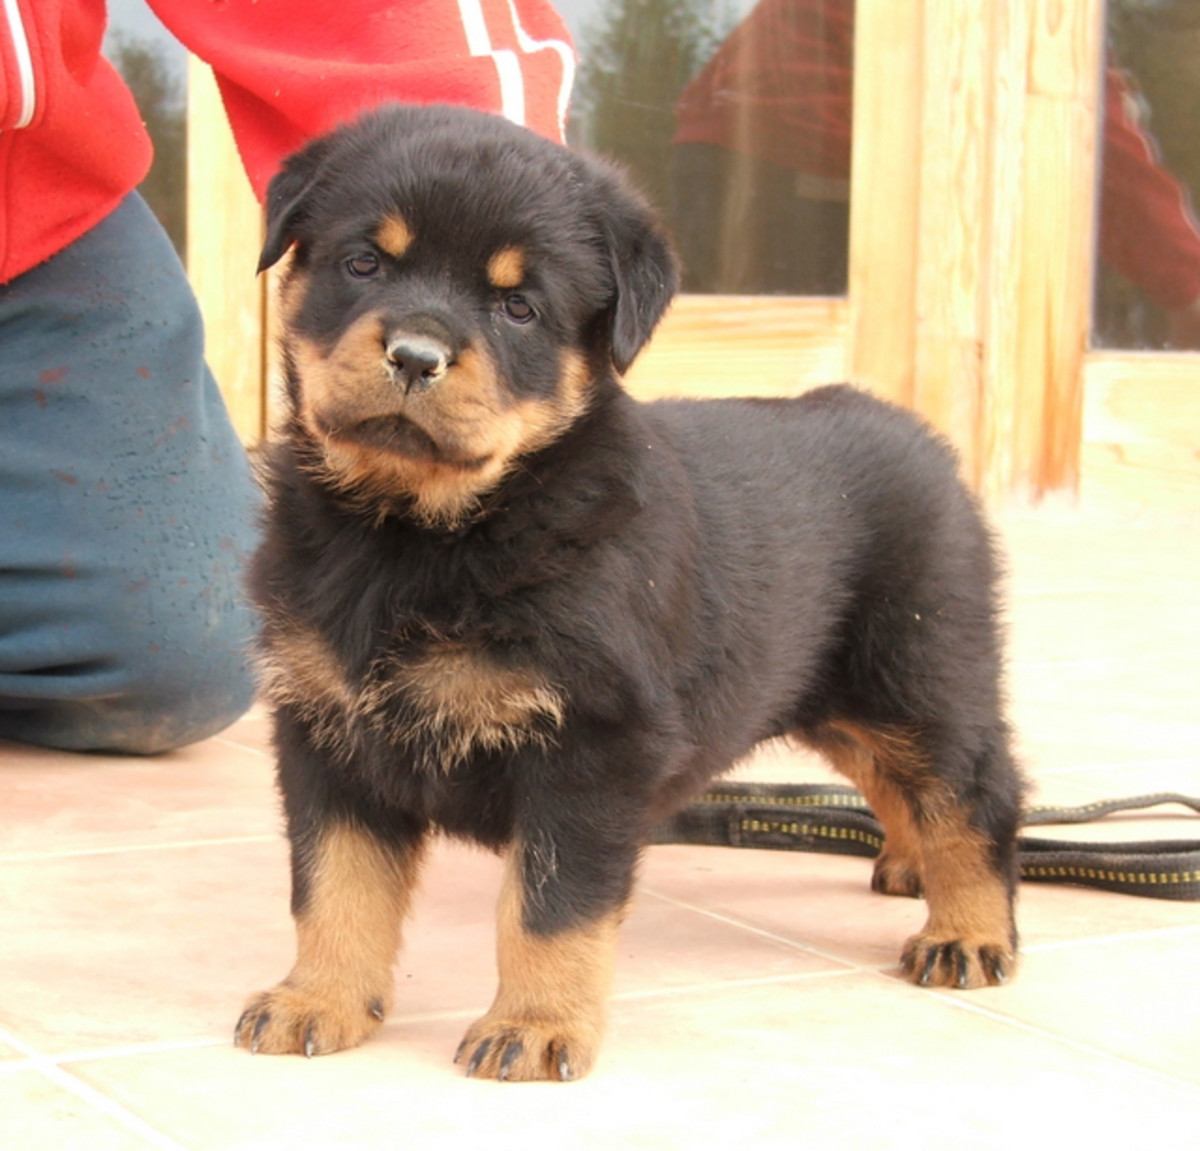 A Rottie puppy.